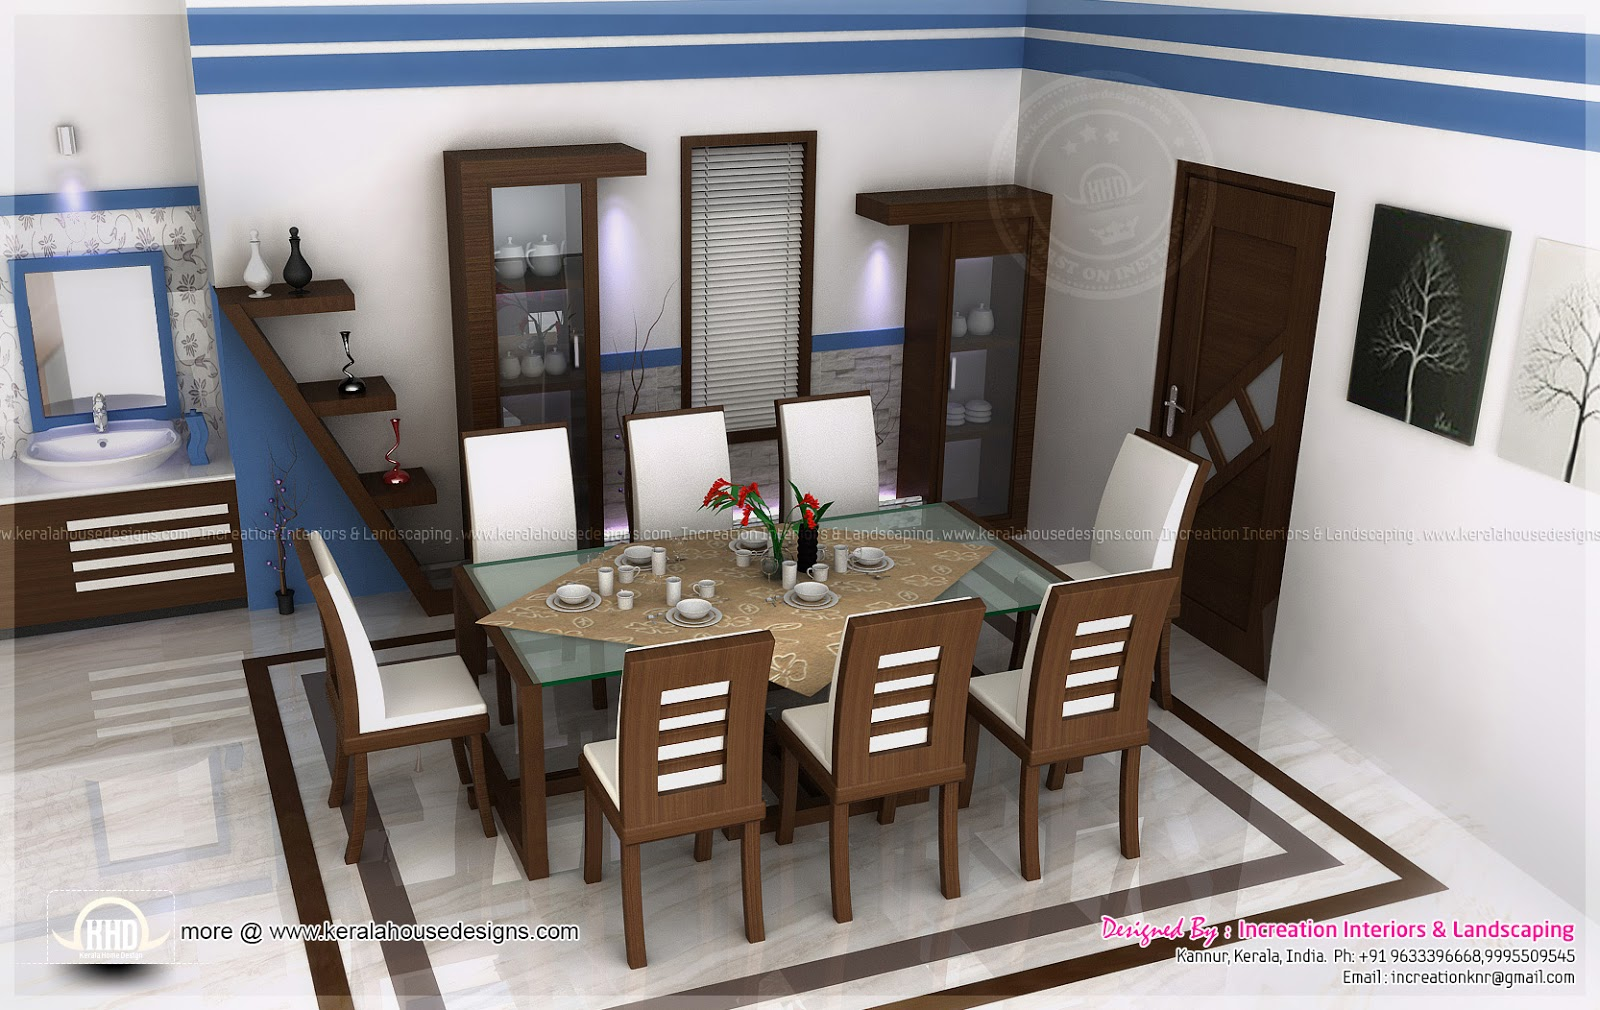 House interior ideas in 3d rendering kerala home design for House interior design kerala photos